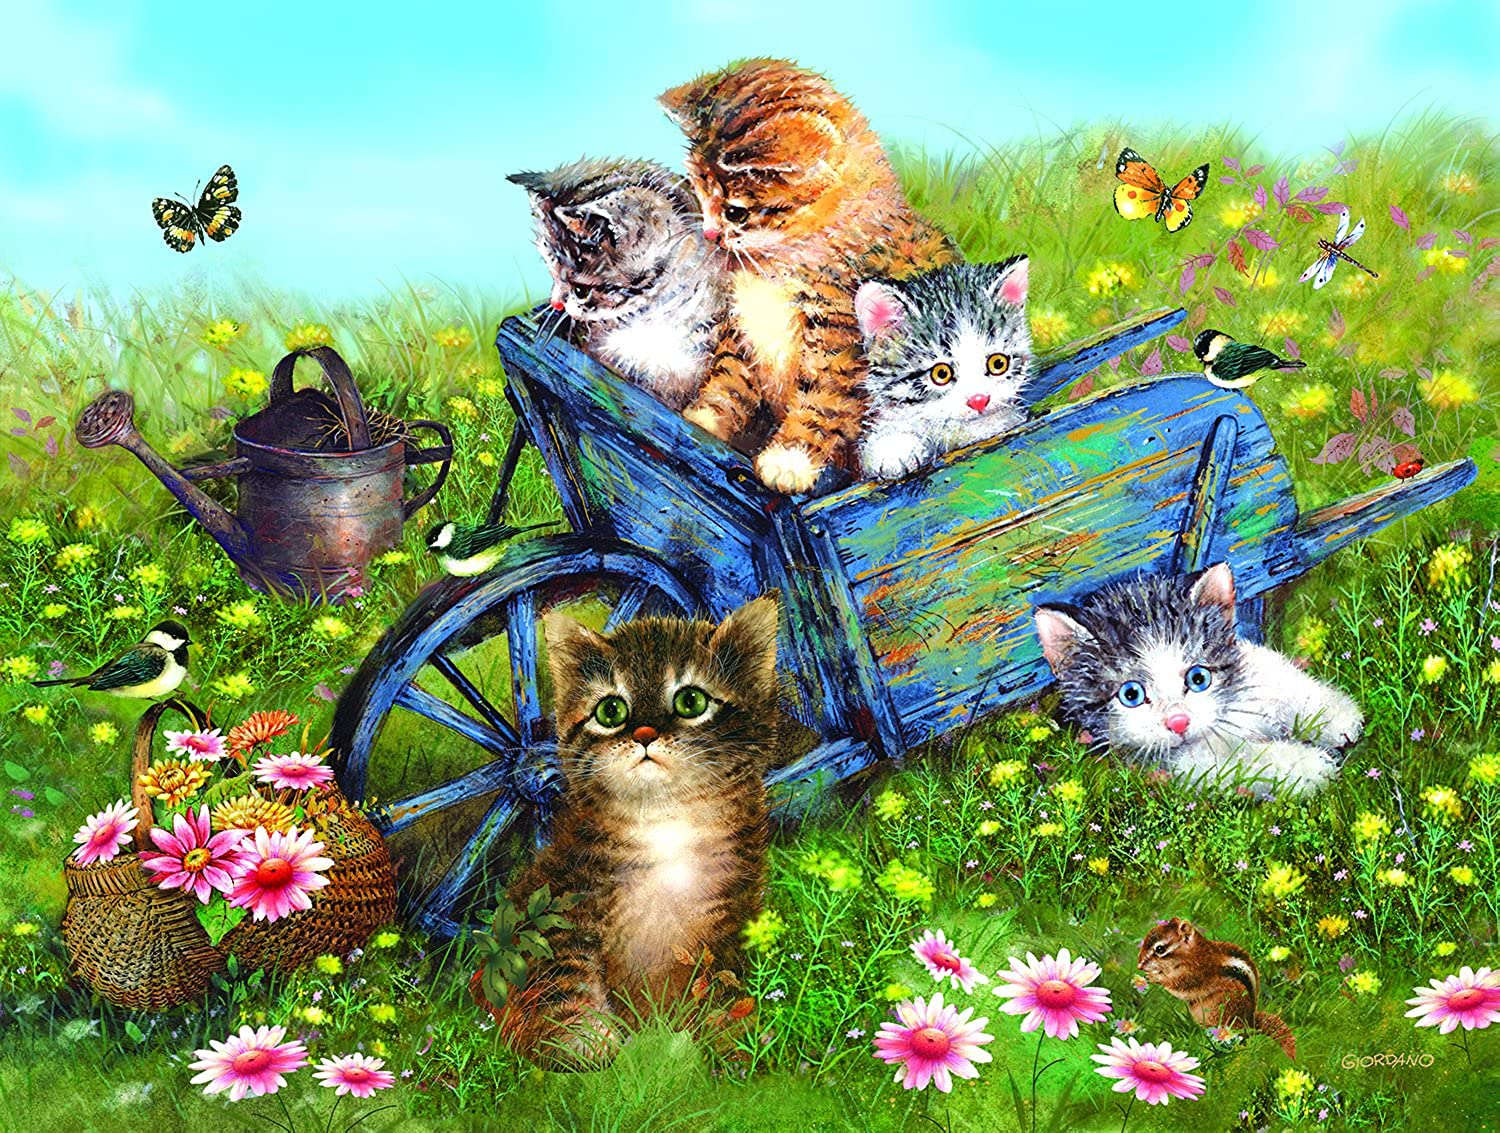 Field Trip for Kittens, A 300 Piece Jigsaw Puzzle by SunsOut